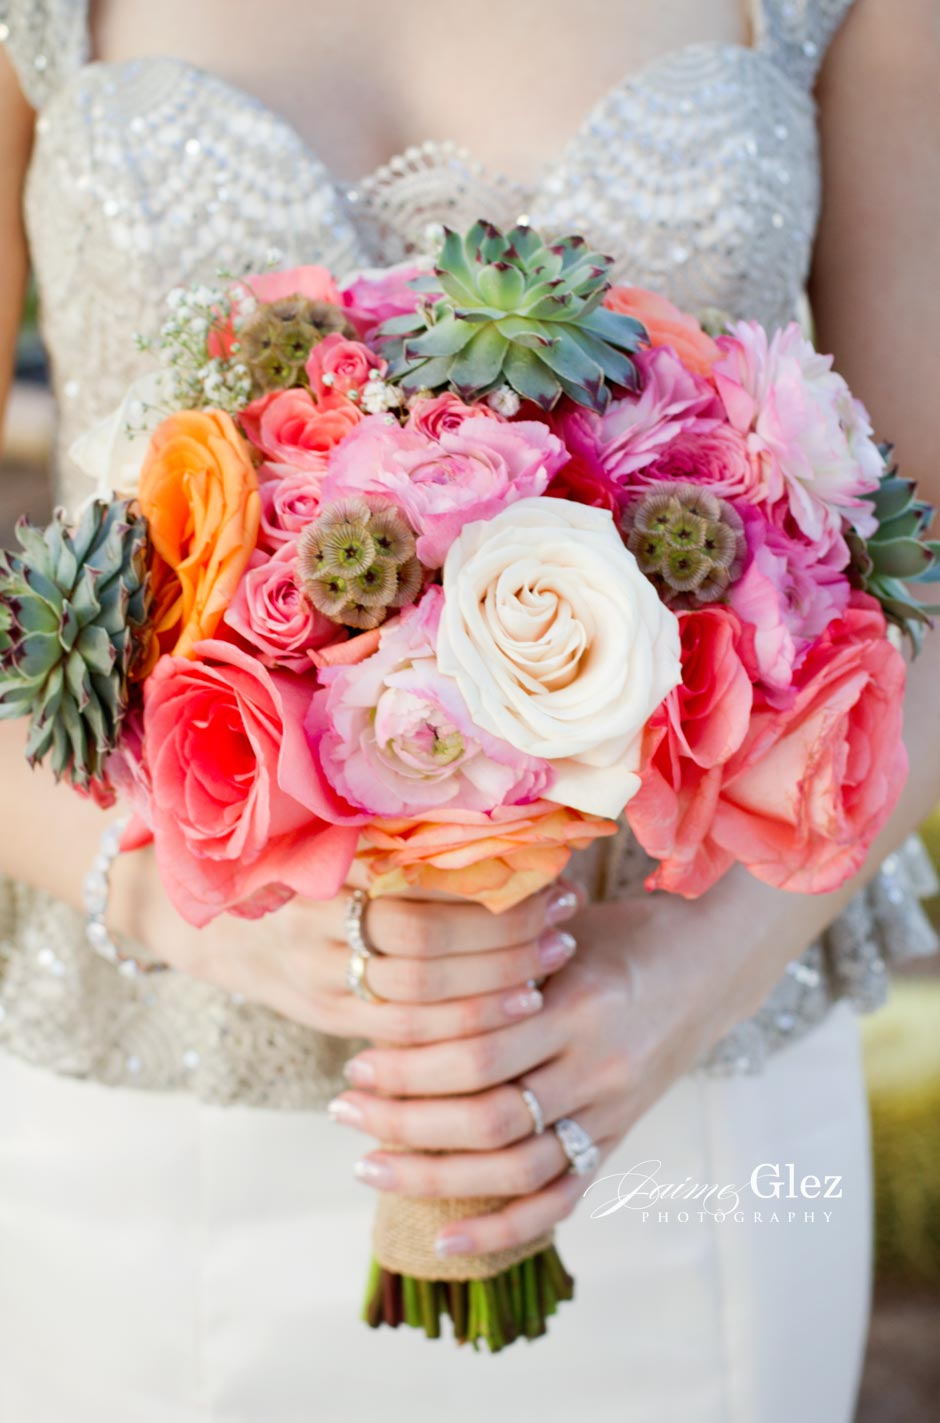 What do you think of this colorful and sweet bridal bouquet? Splendid!!!